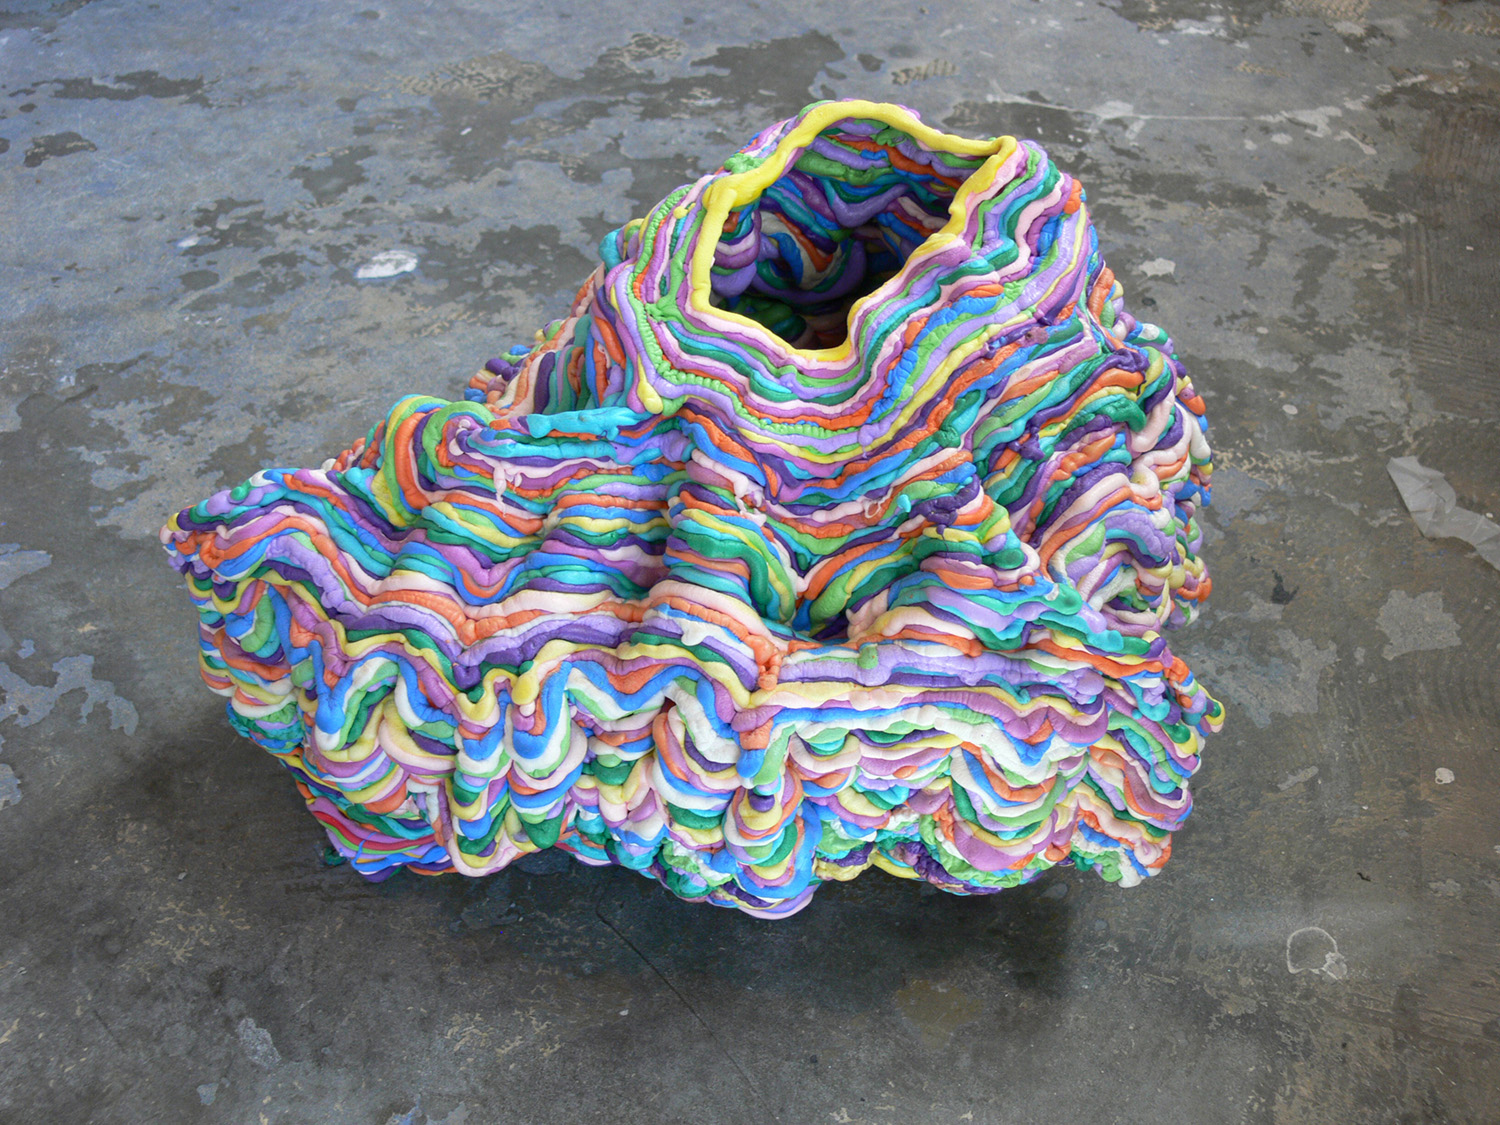 Aura Rock 3 (2012) (Installation View) puff paint, 12 x 8 x 6 inches